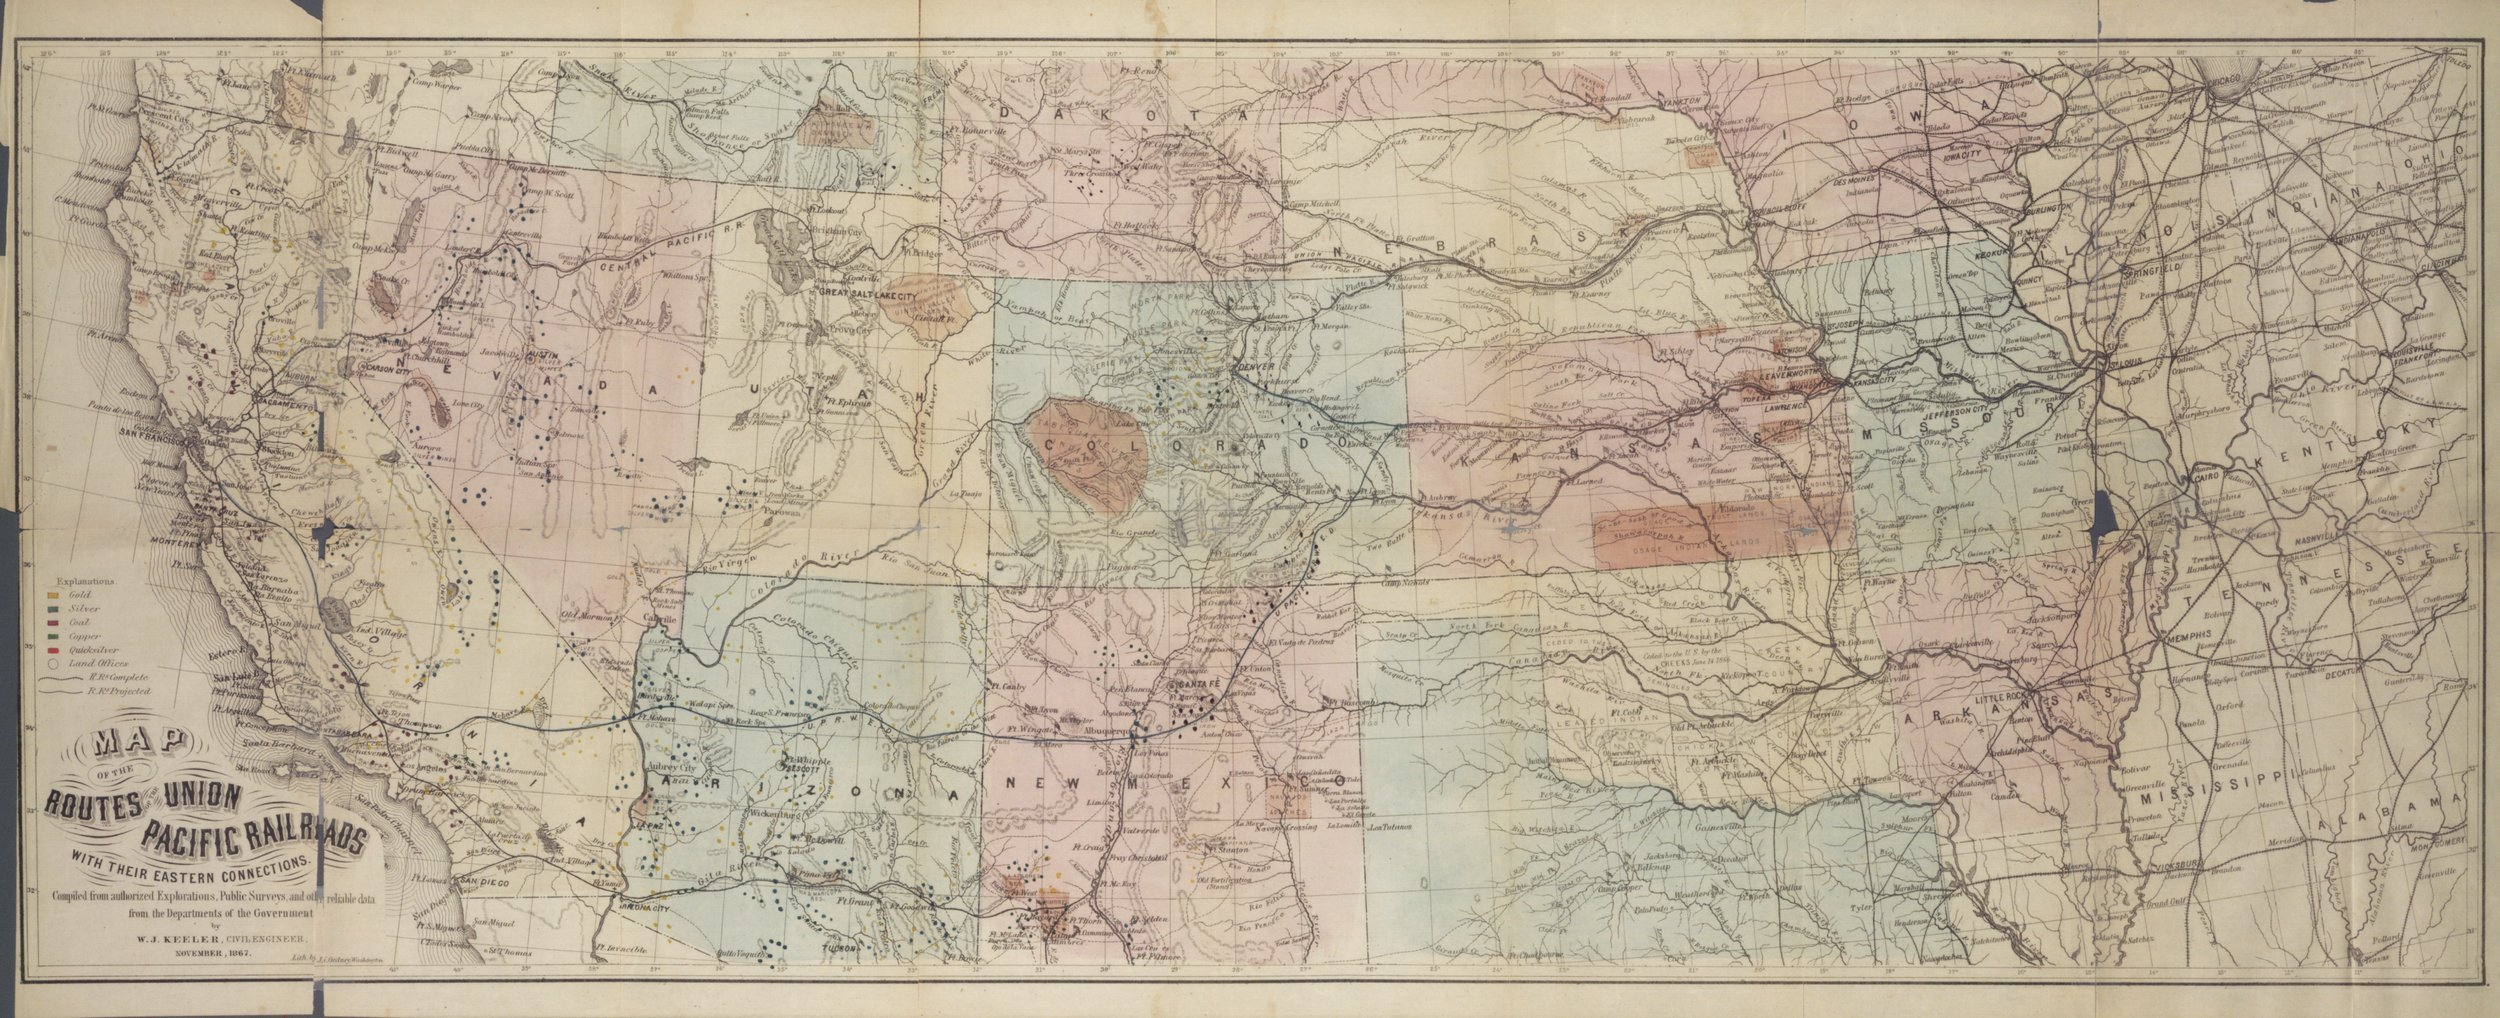 Kansas and the country beyond, on the line of the Union Pacific Railway, Eastern Division, from the Missouri to the Pacific ocean - map